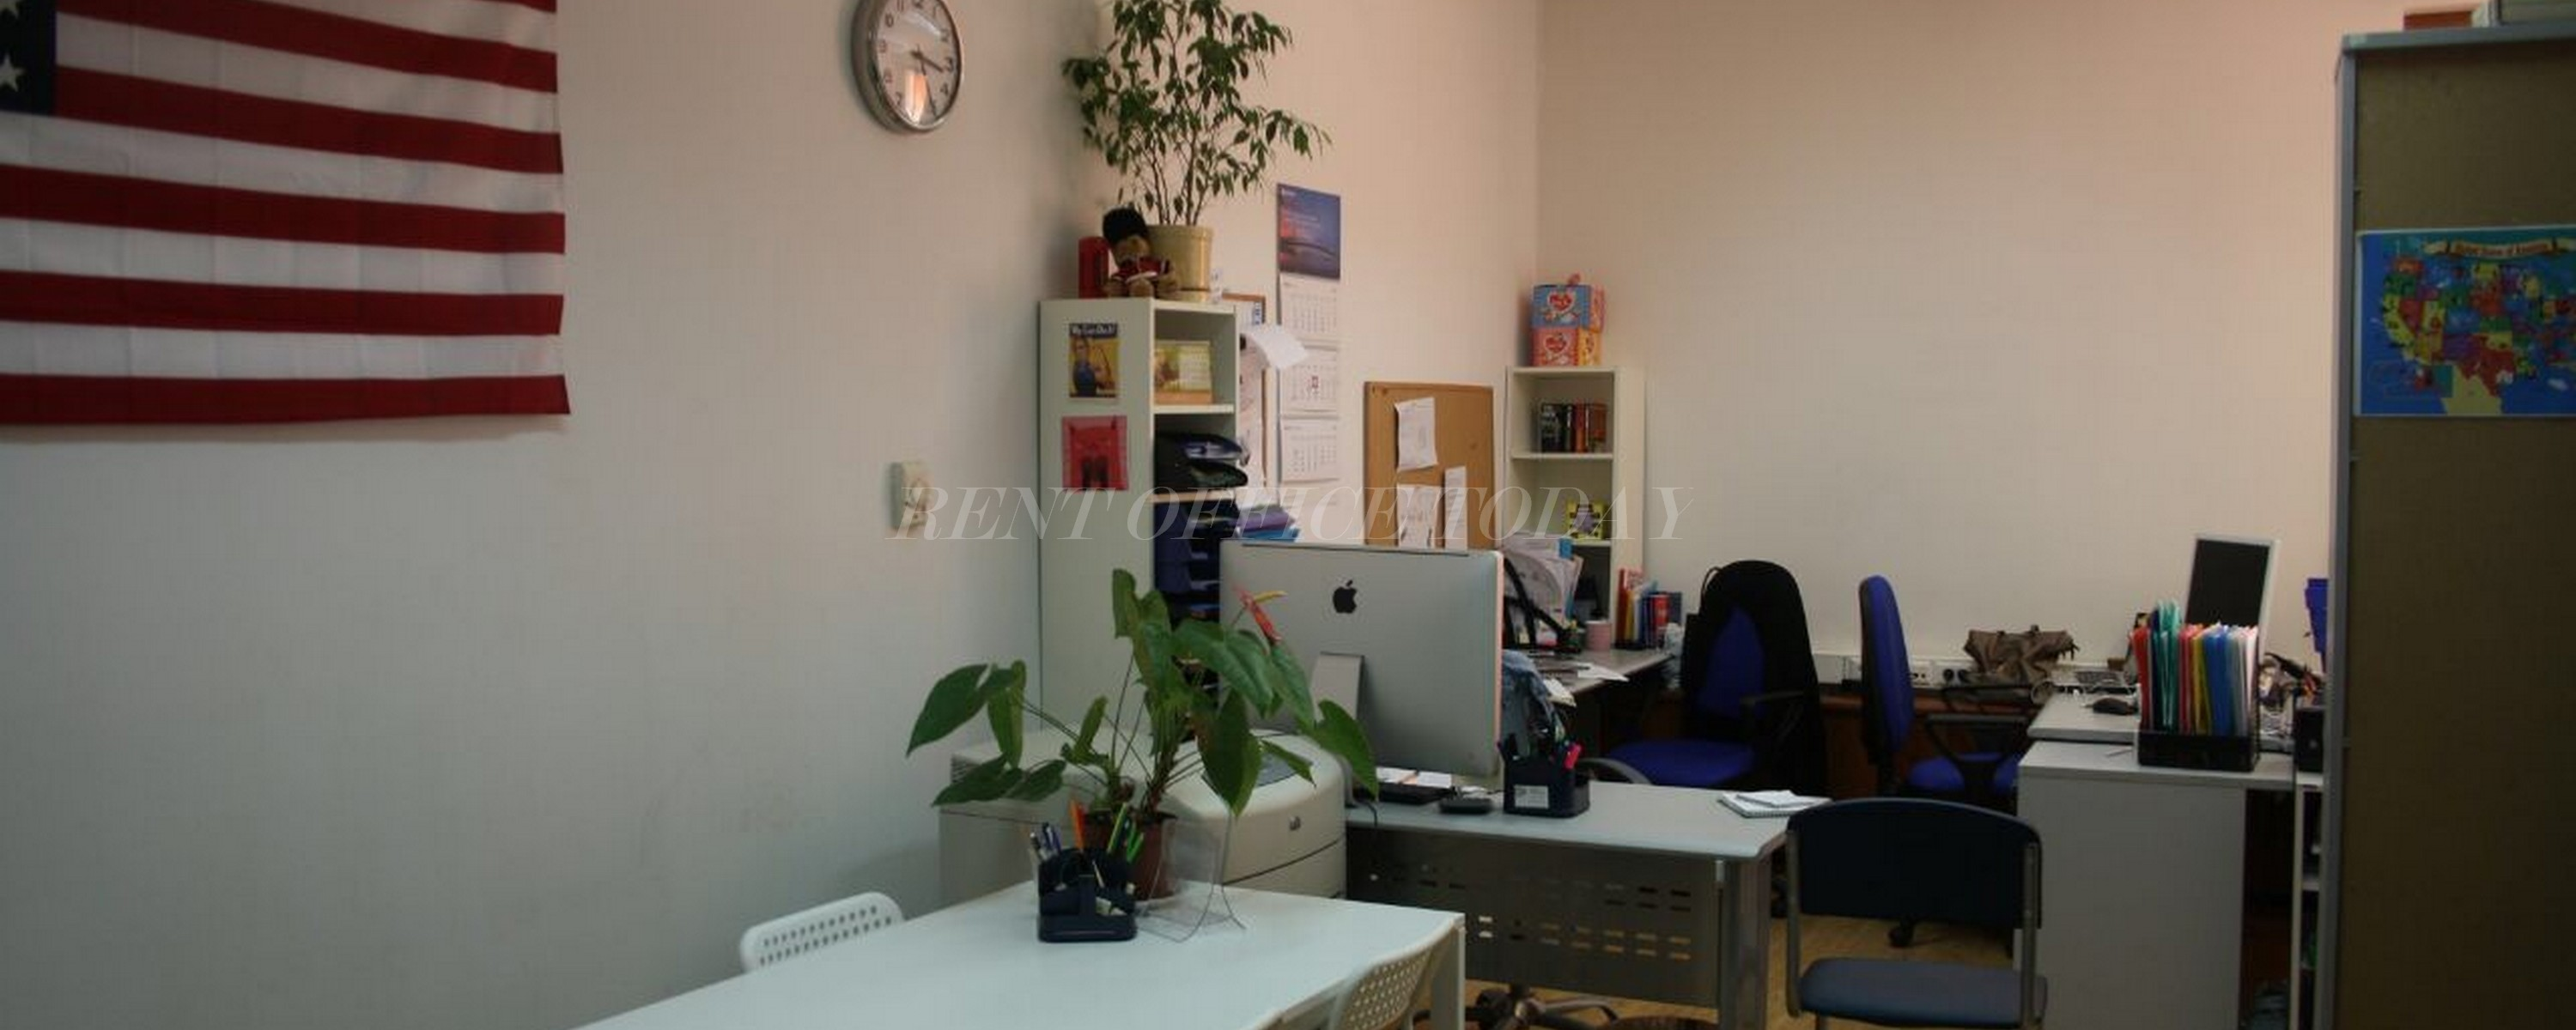 office rent 2 tverskaya-yamskaya 16-18-10